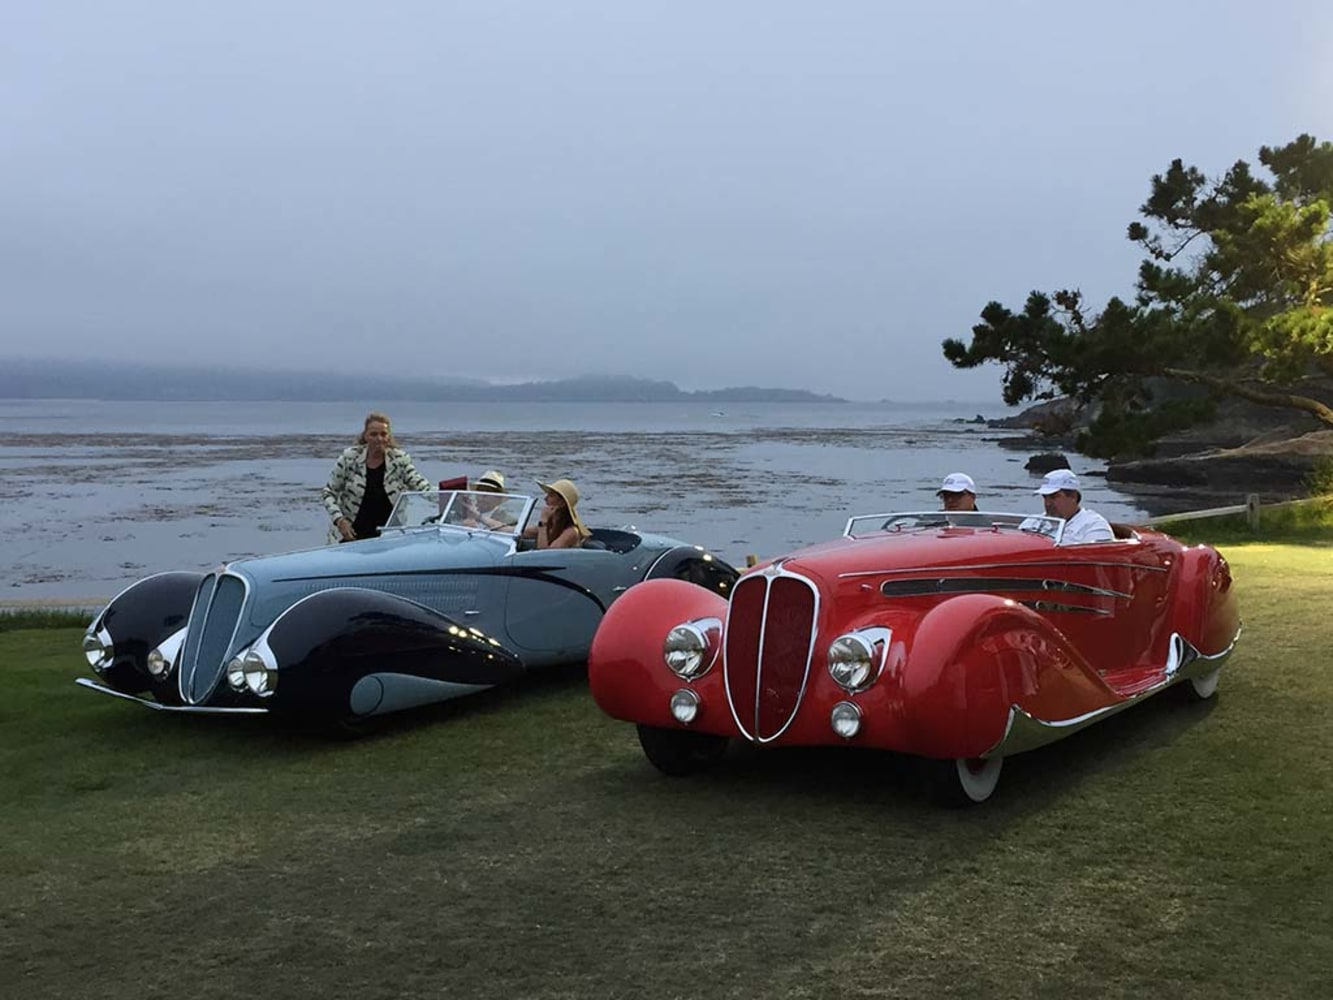 Bmw 328 0 60 >> At Pebble Beach's Concours d'Elegance, $500M in Classic Cars on Display - NBC News